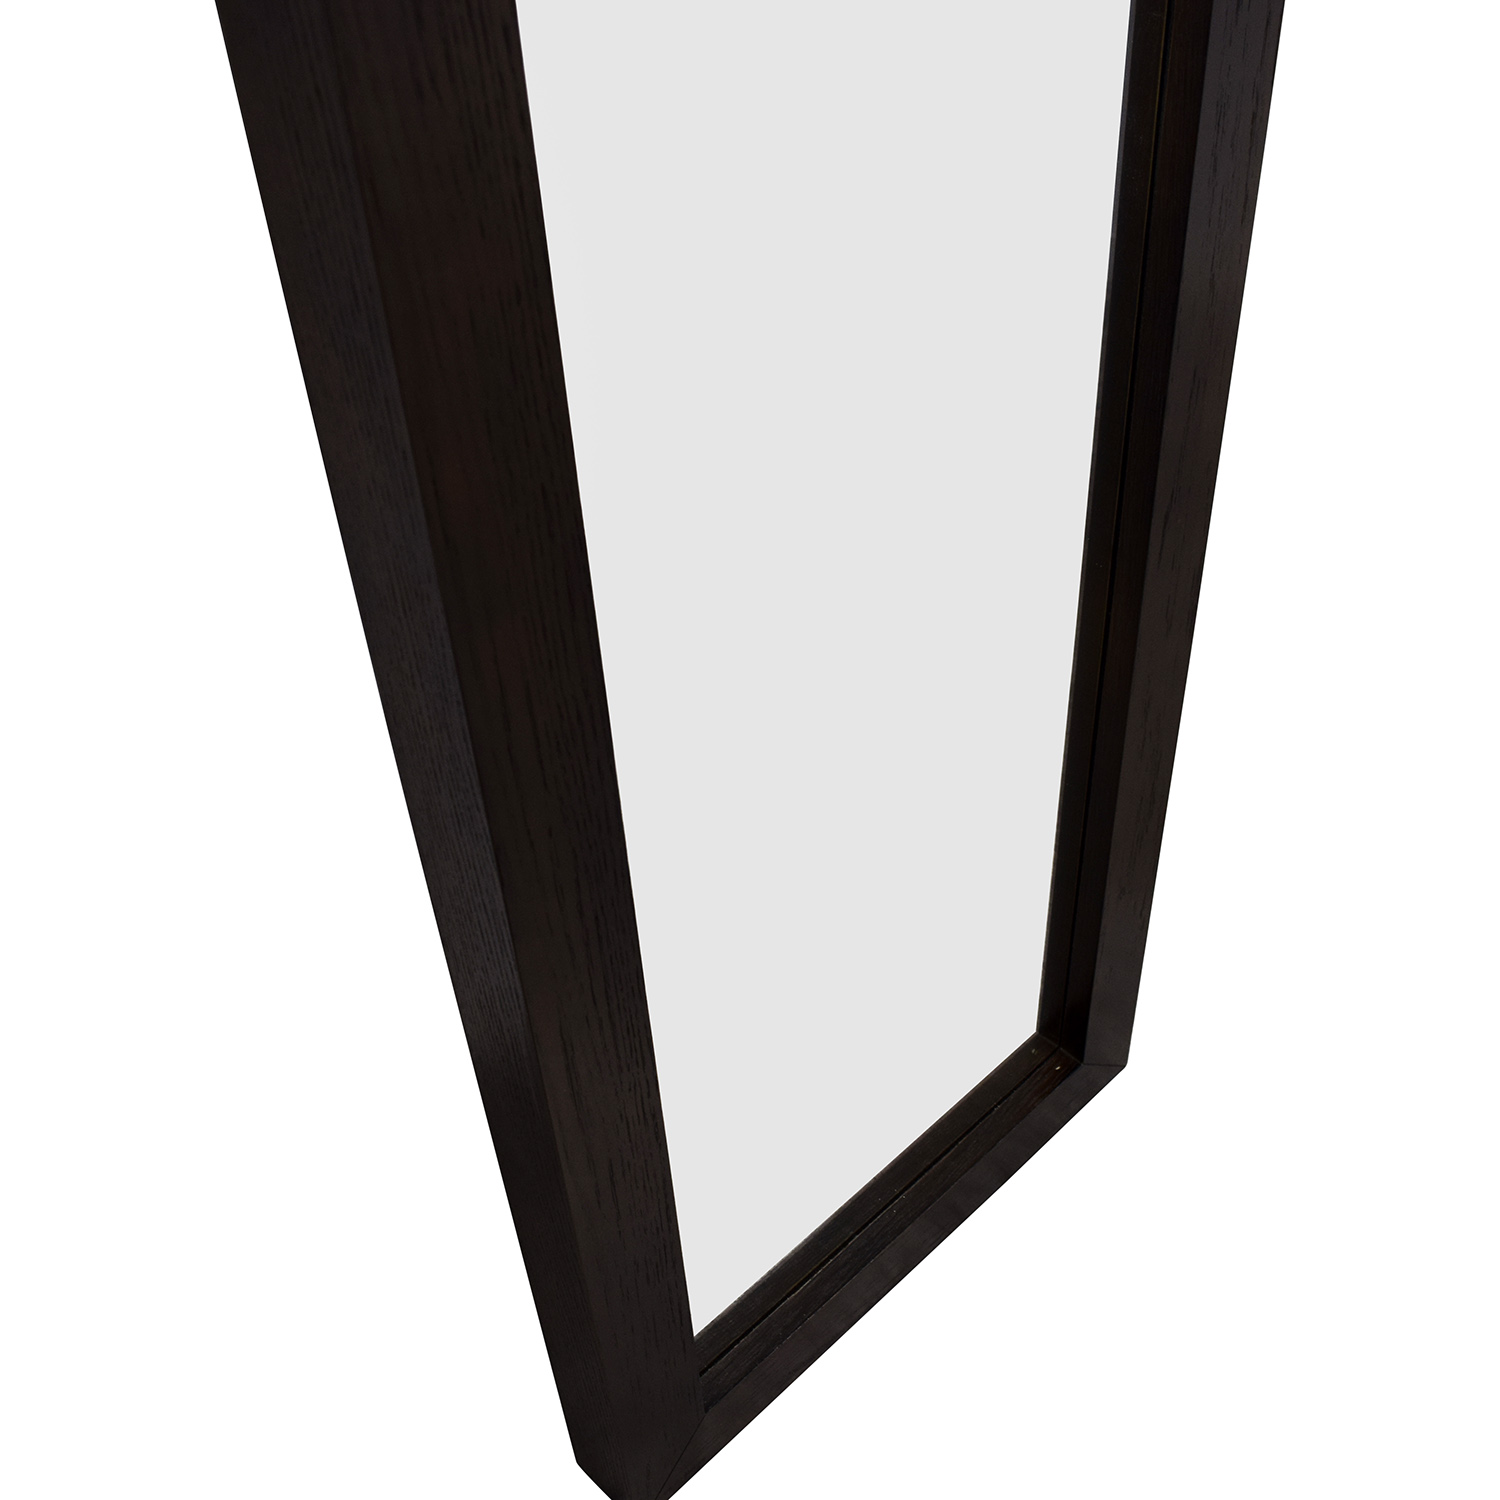 72% OFF - West Elm West Elm Floating Wood Floor Mirror / Decor